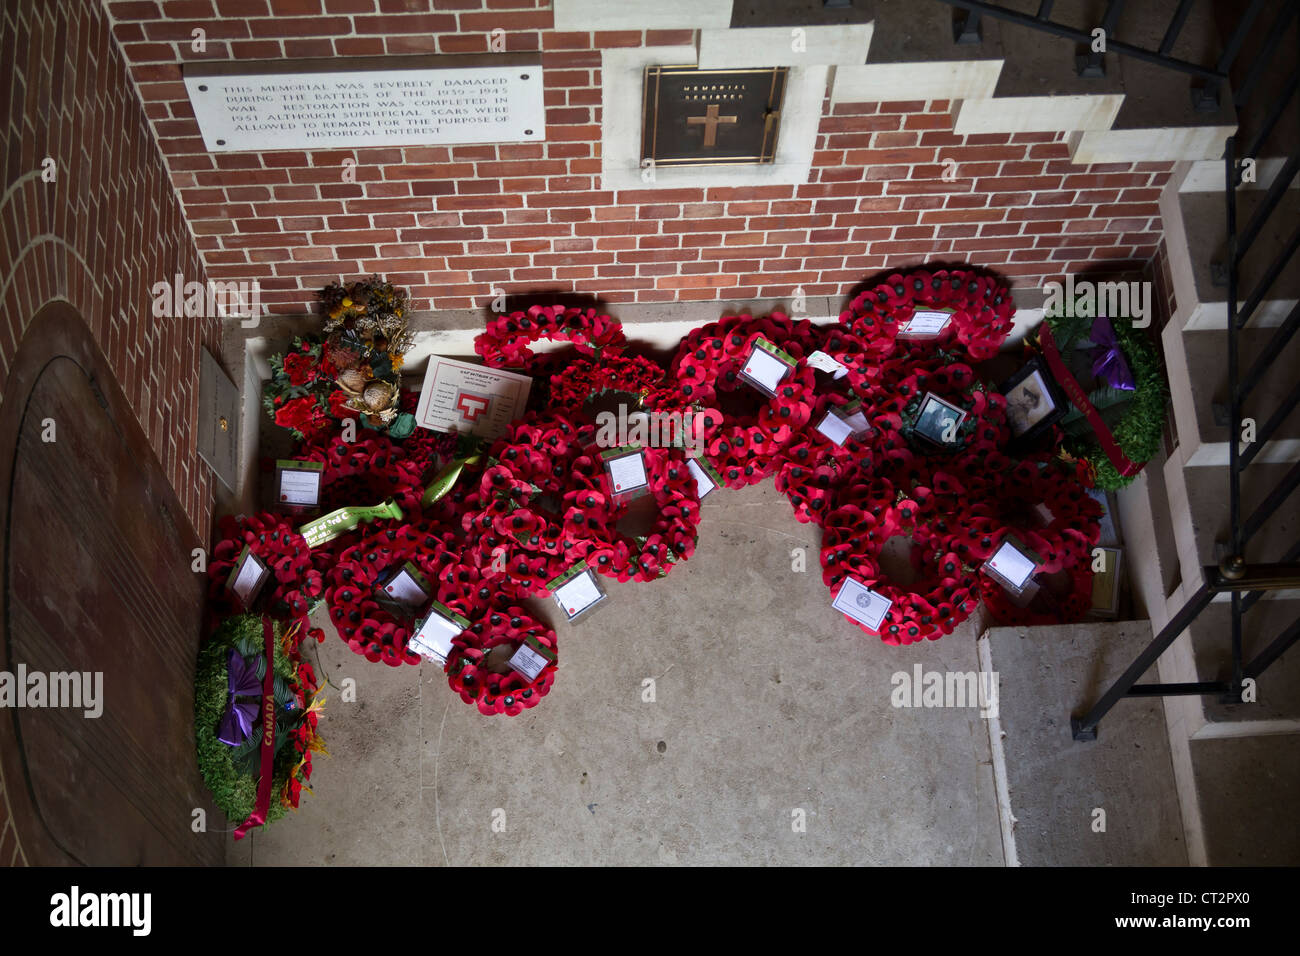 Poppy Wreaths at the Australian National Memorial, Villers-Bretonneux, Picardy, France - Stock Image